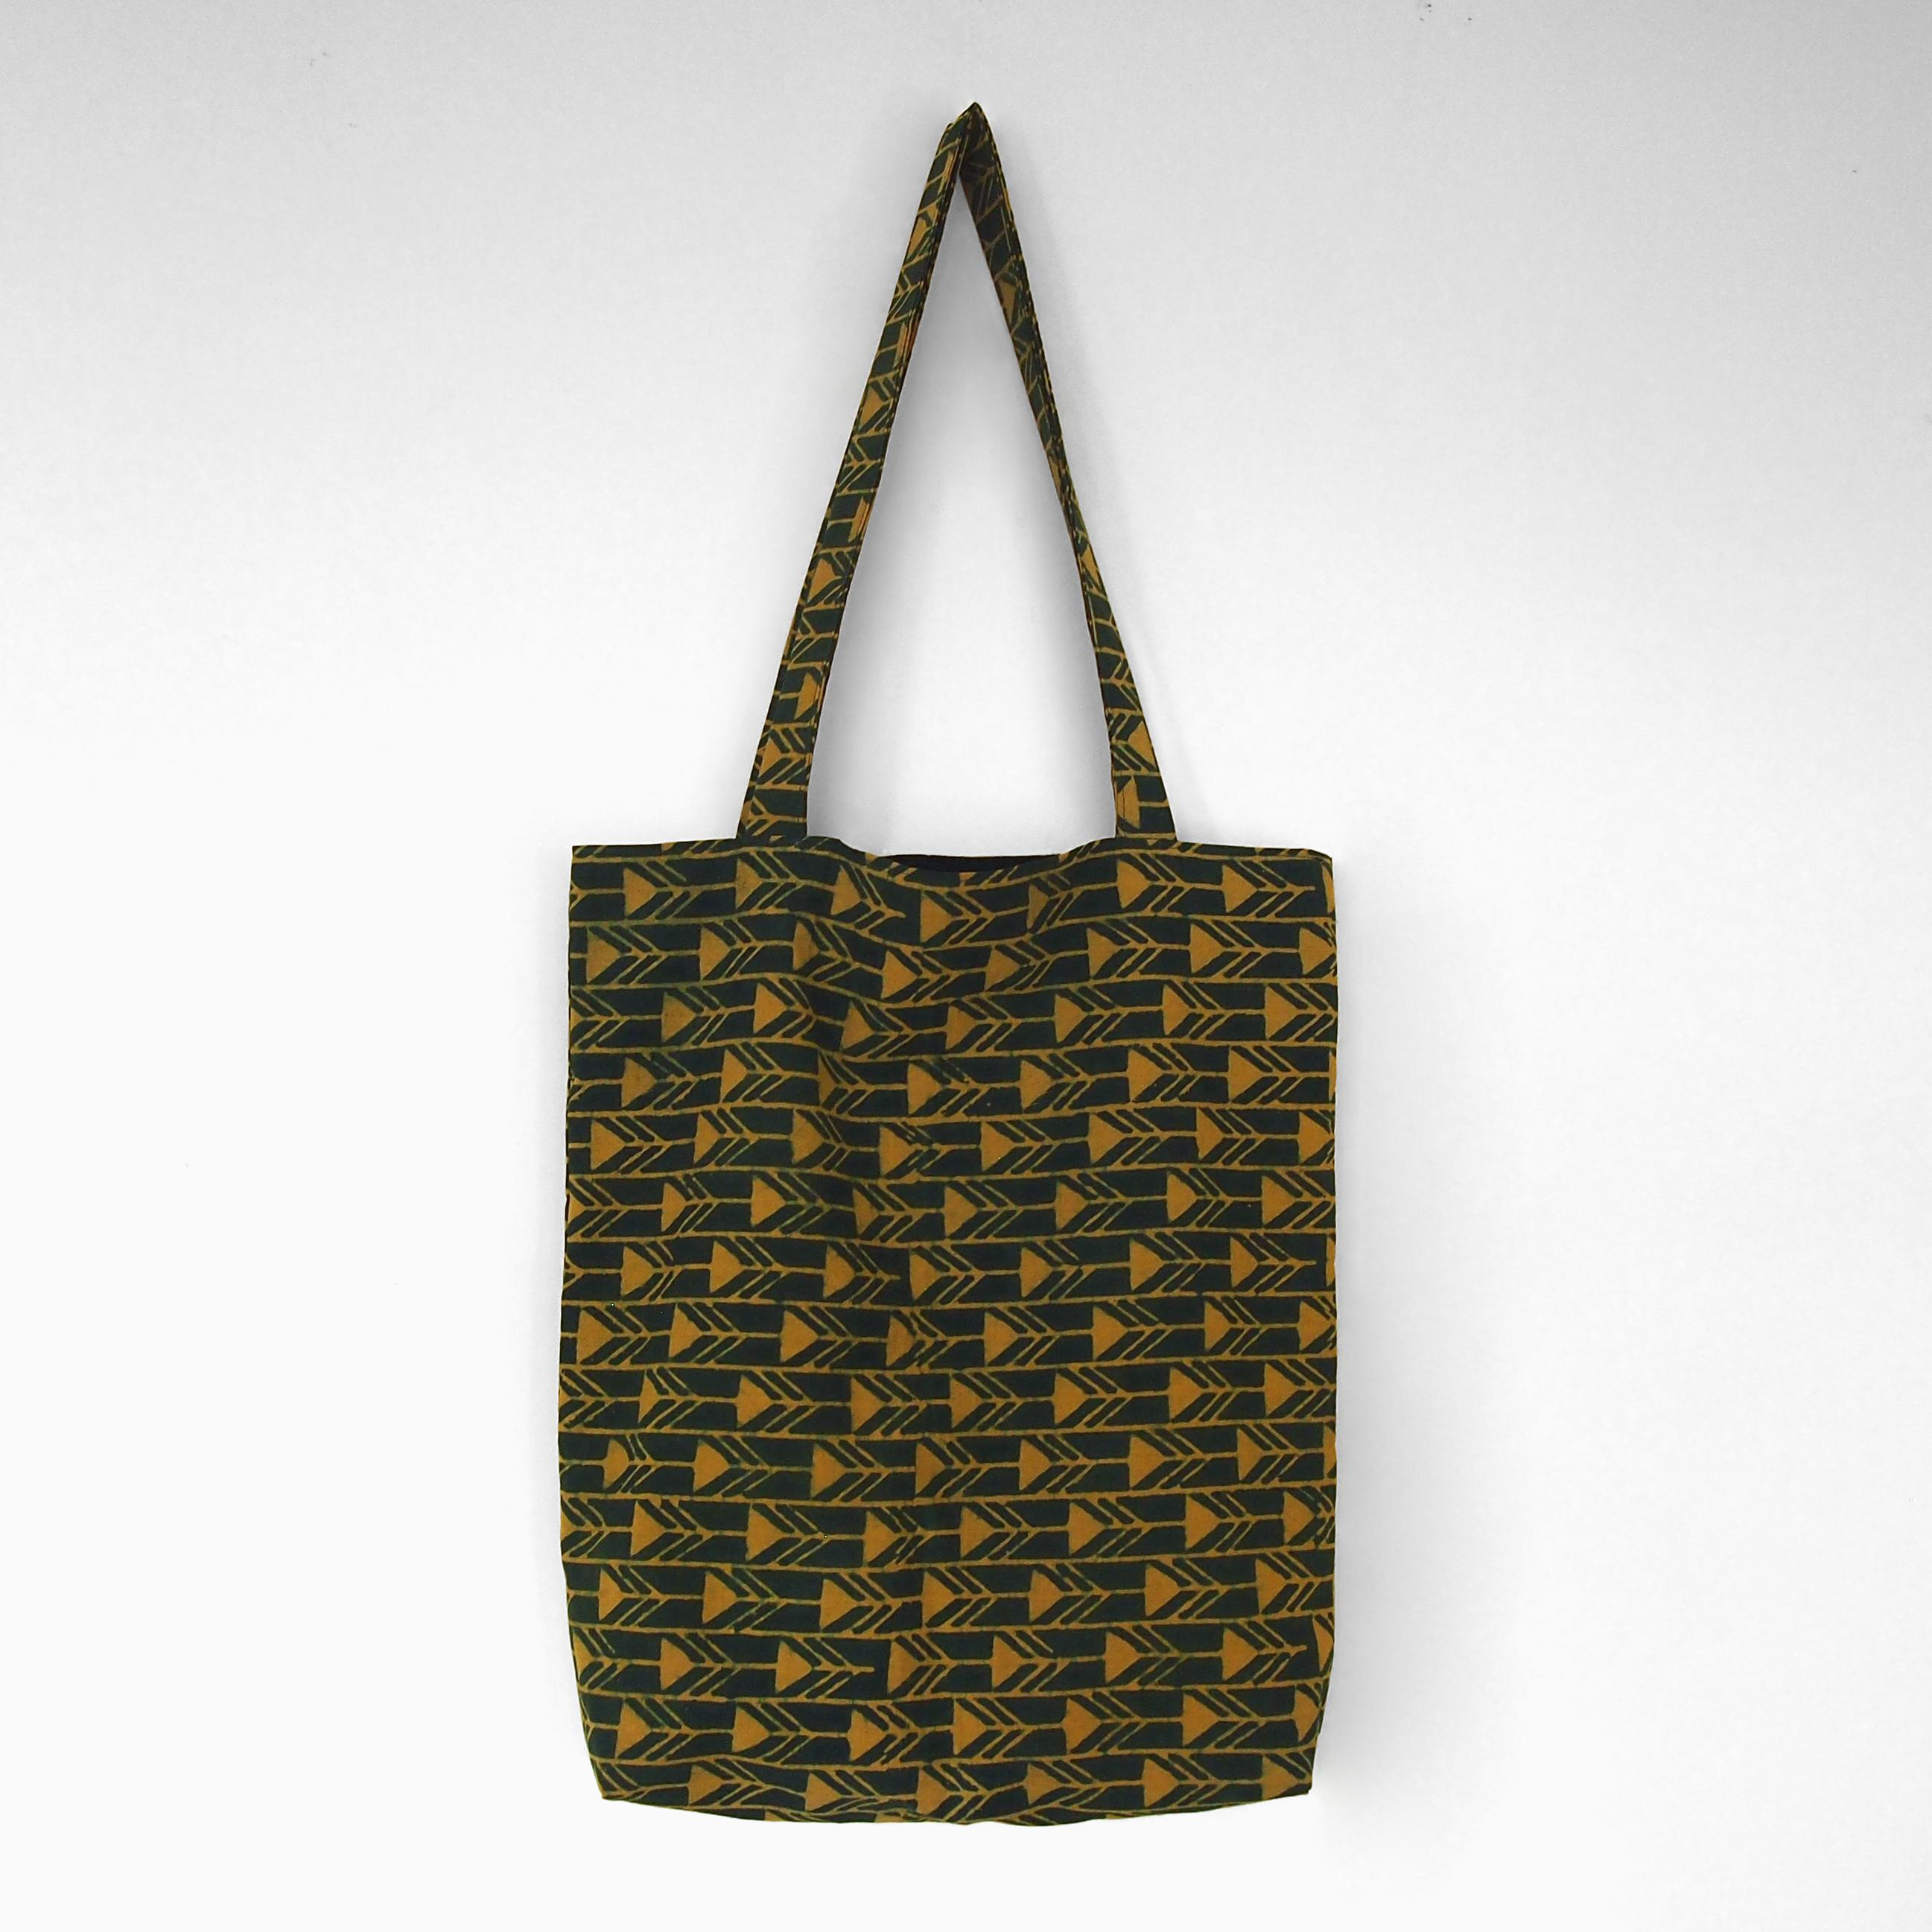 block printed cotton tote bag, green, yellow arrow design, natural dye, lined with black cotton, closed